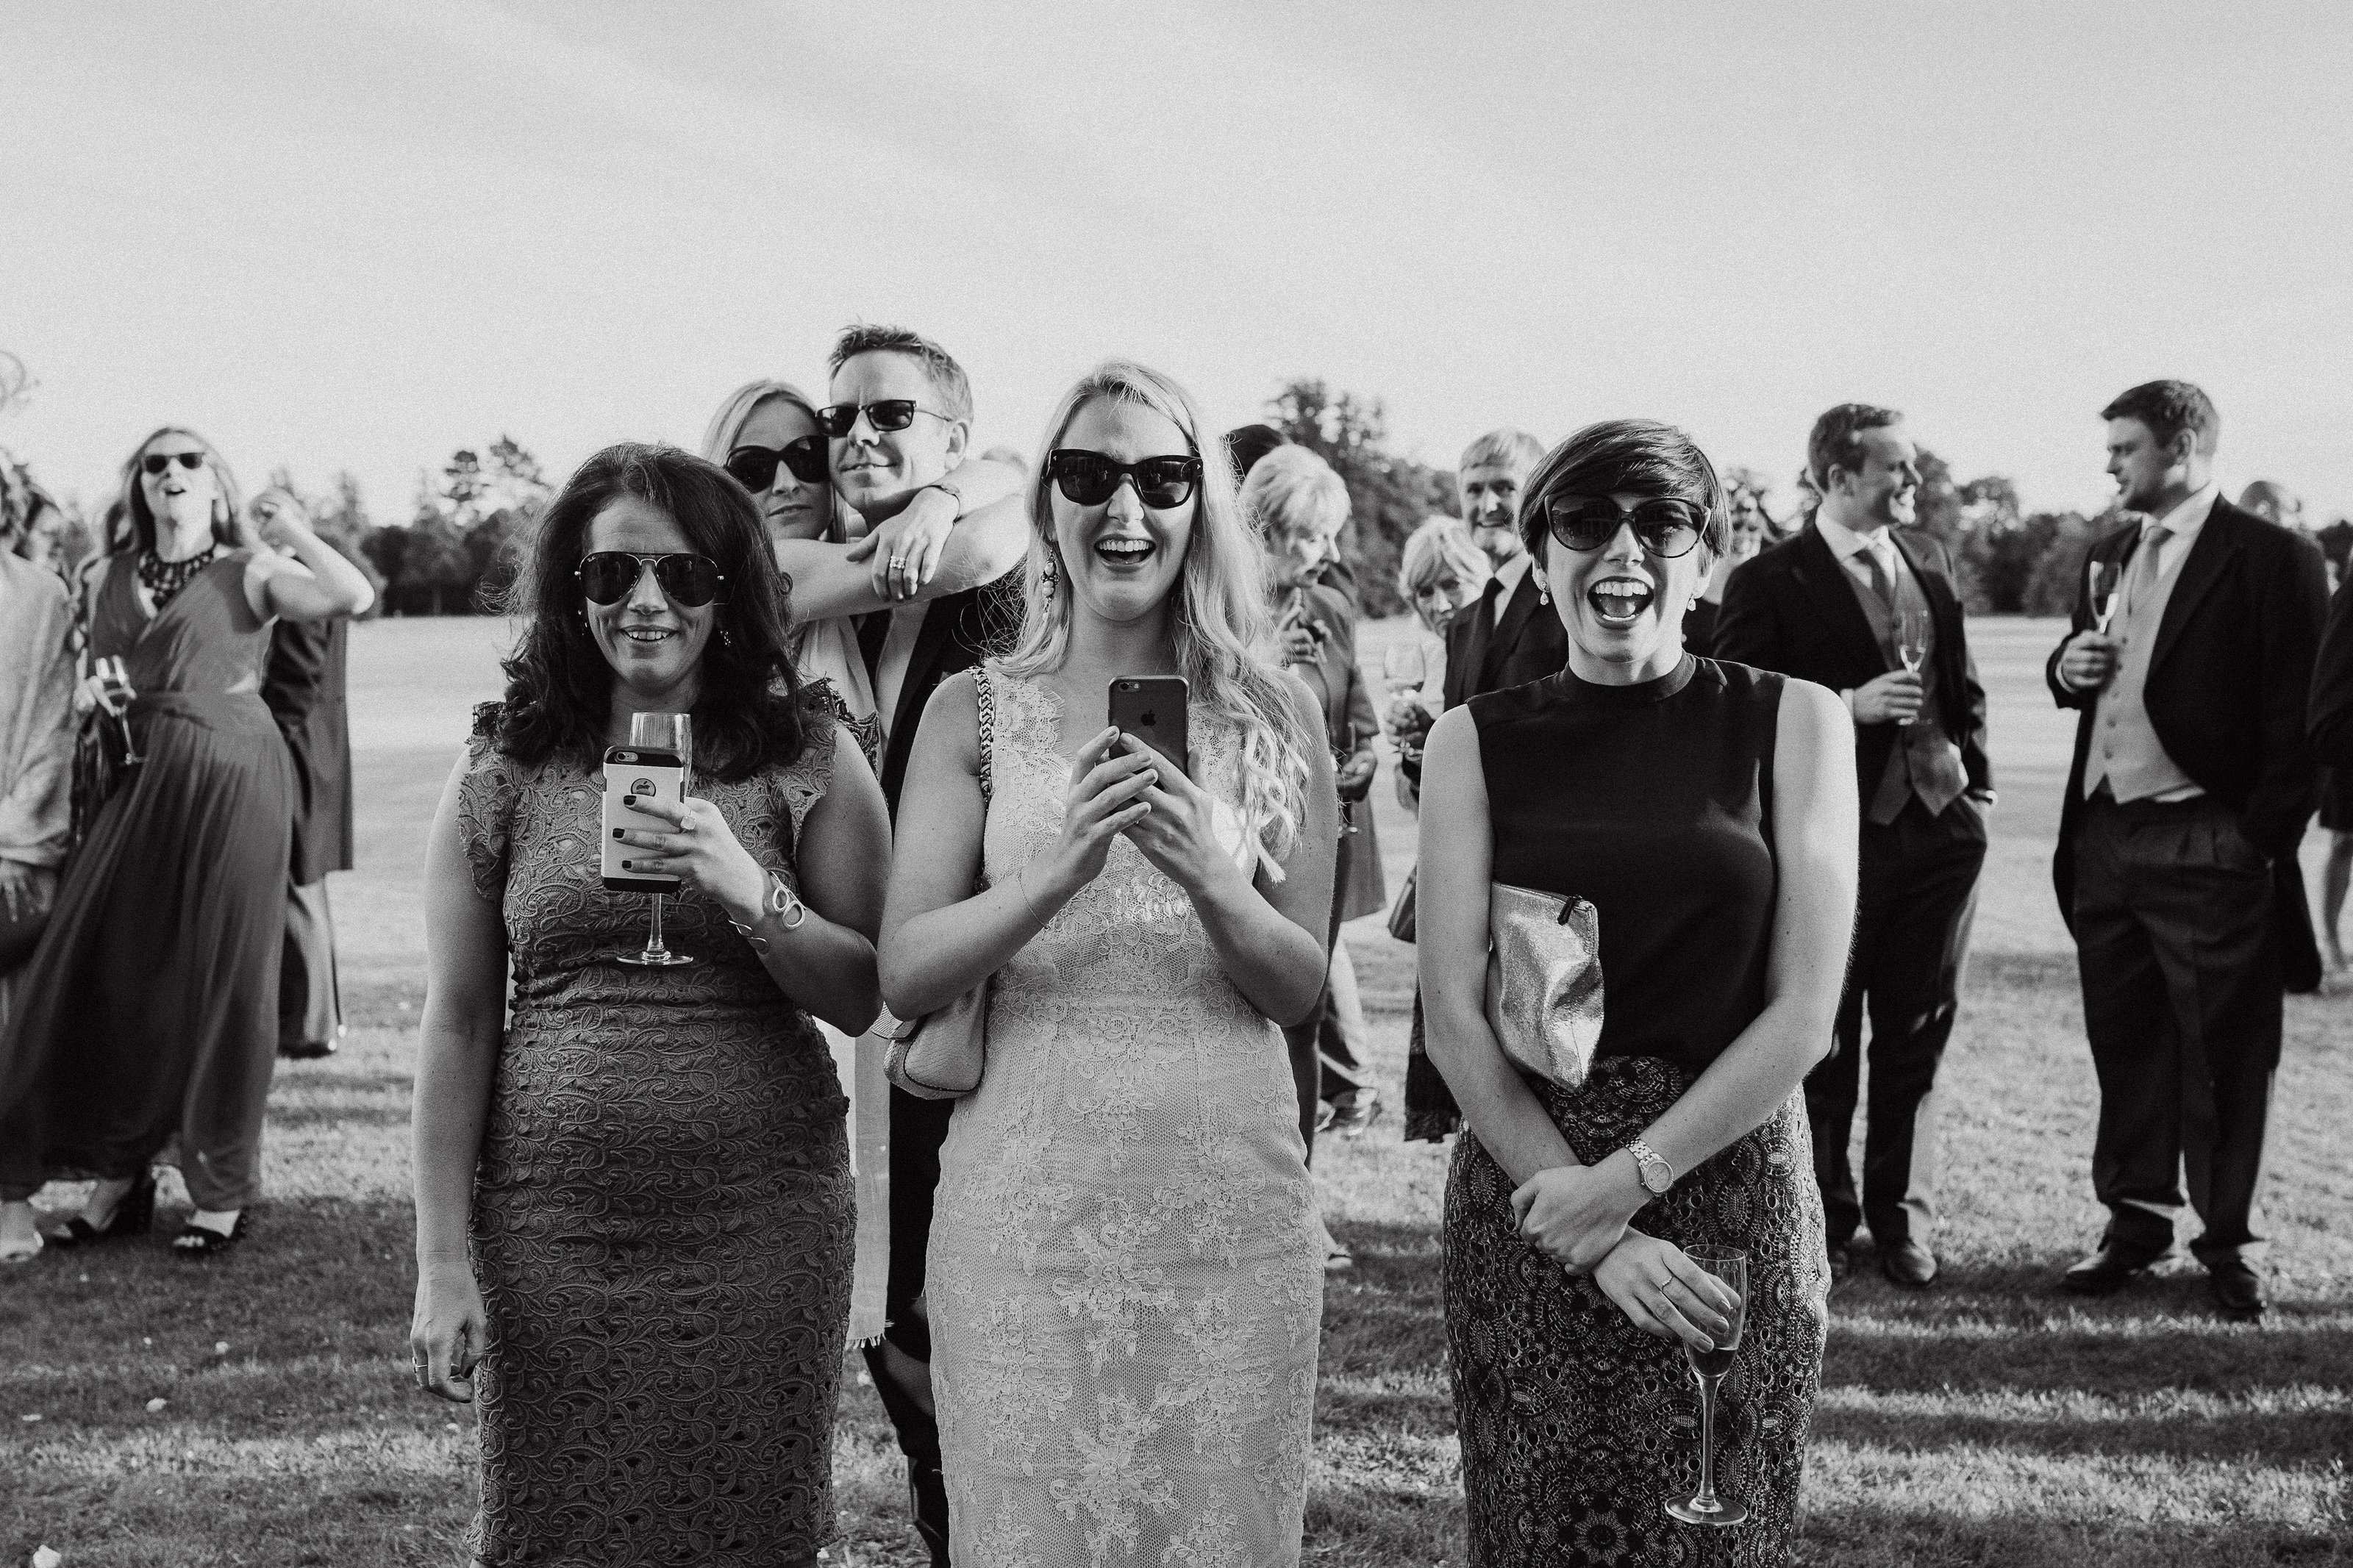 Three guests laugh in this candid black and white moment captured by Adorlee Photography at Goodwood House in Chichester